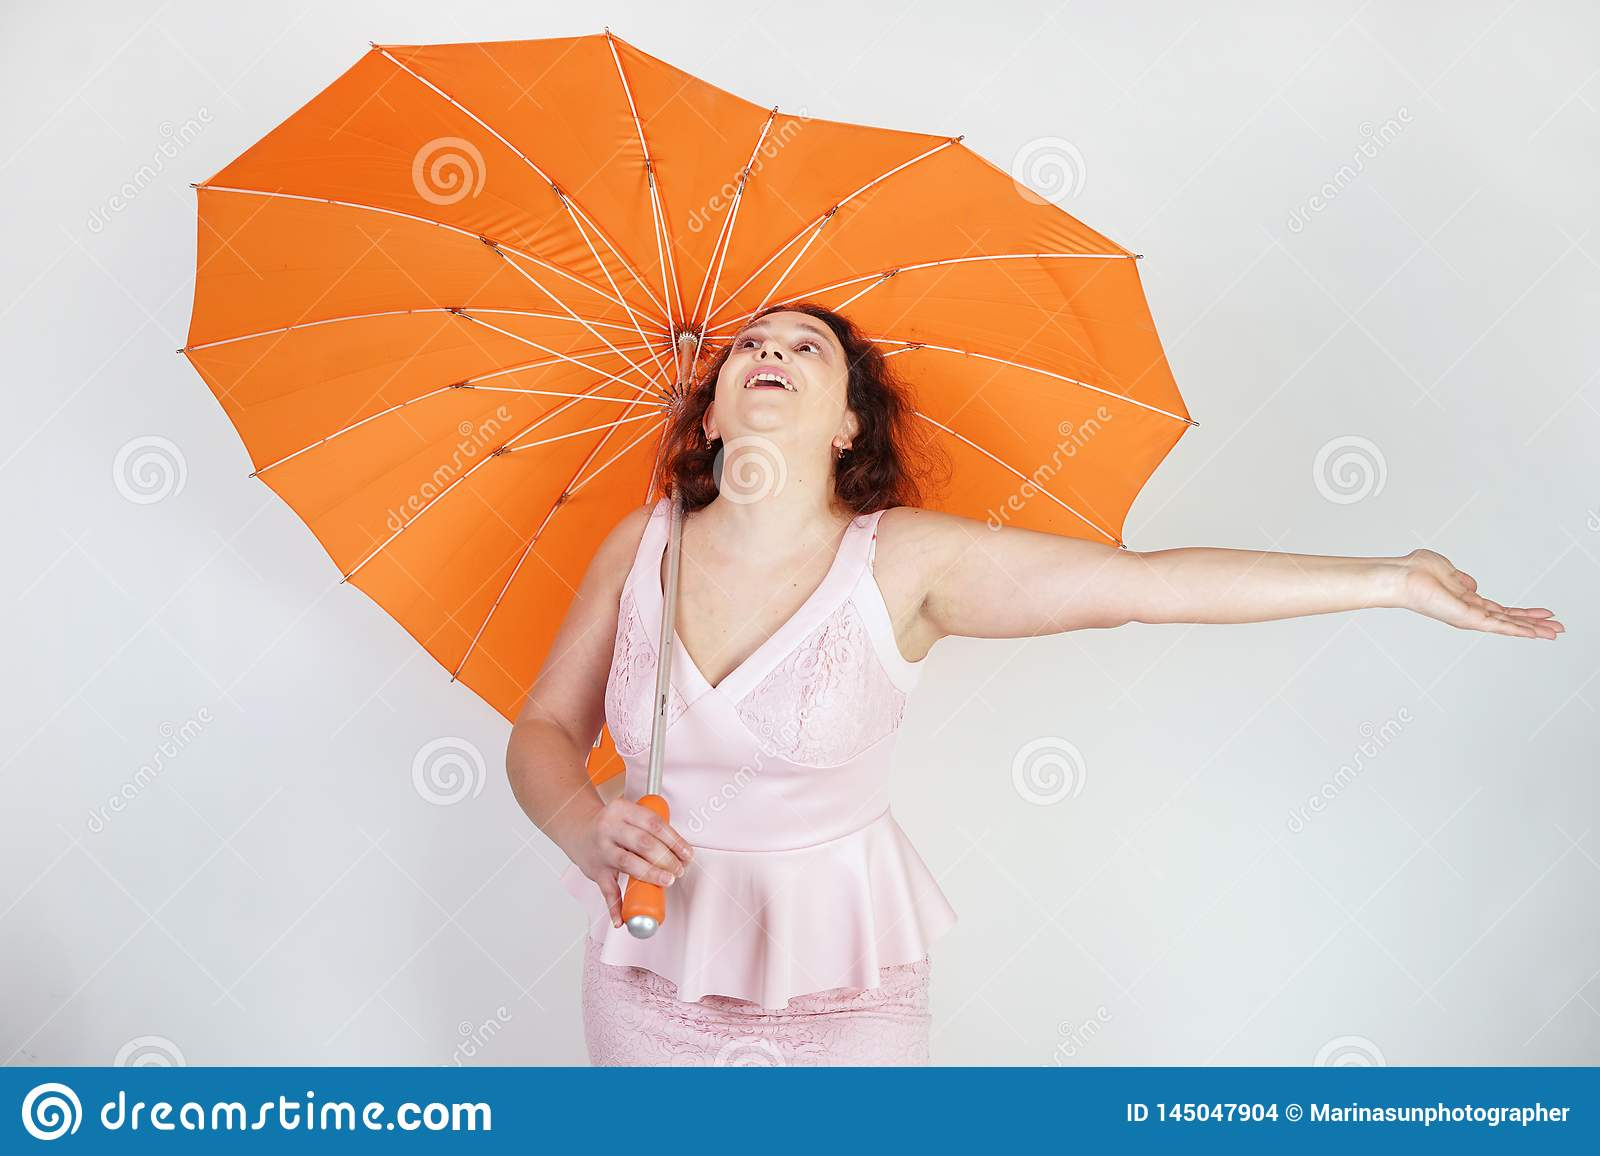 Feminine woman with plus size body in pink dress with orange big heart shaped umbrella posing on white background in Studio